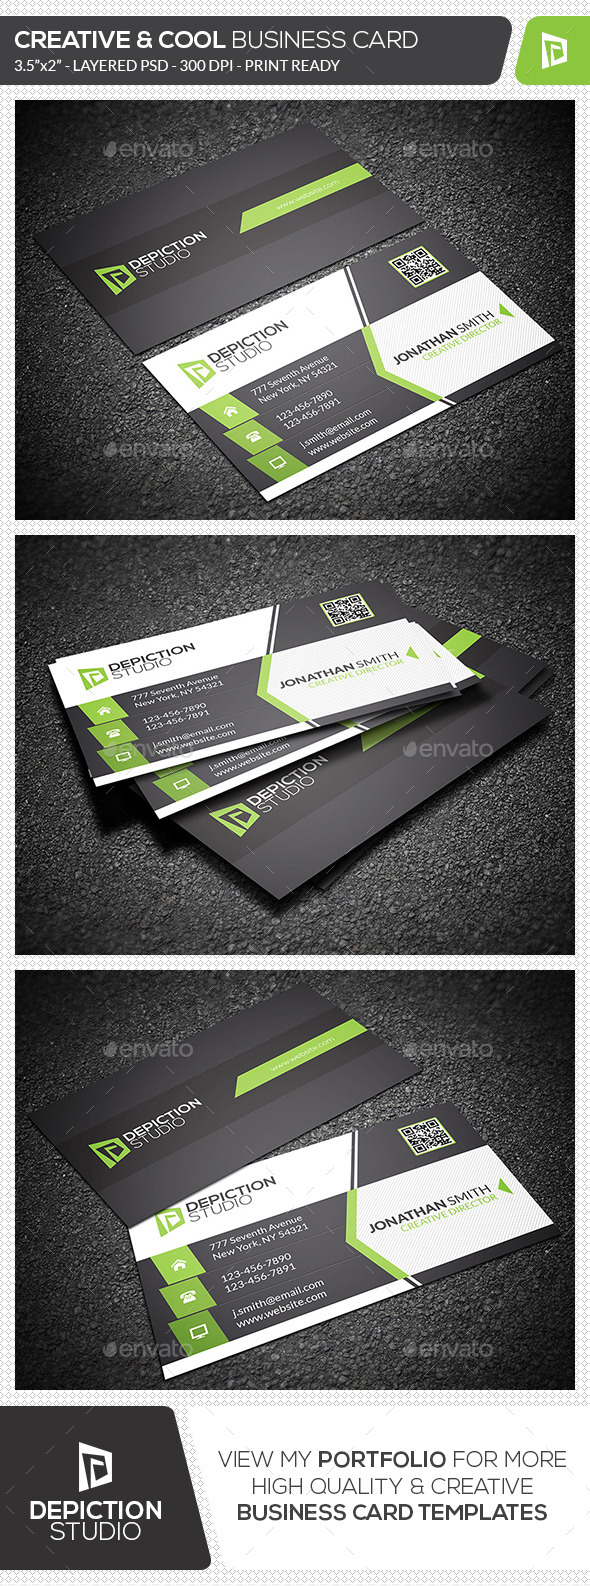 GraphicRiver Creative & Cool Business Card 11942497